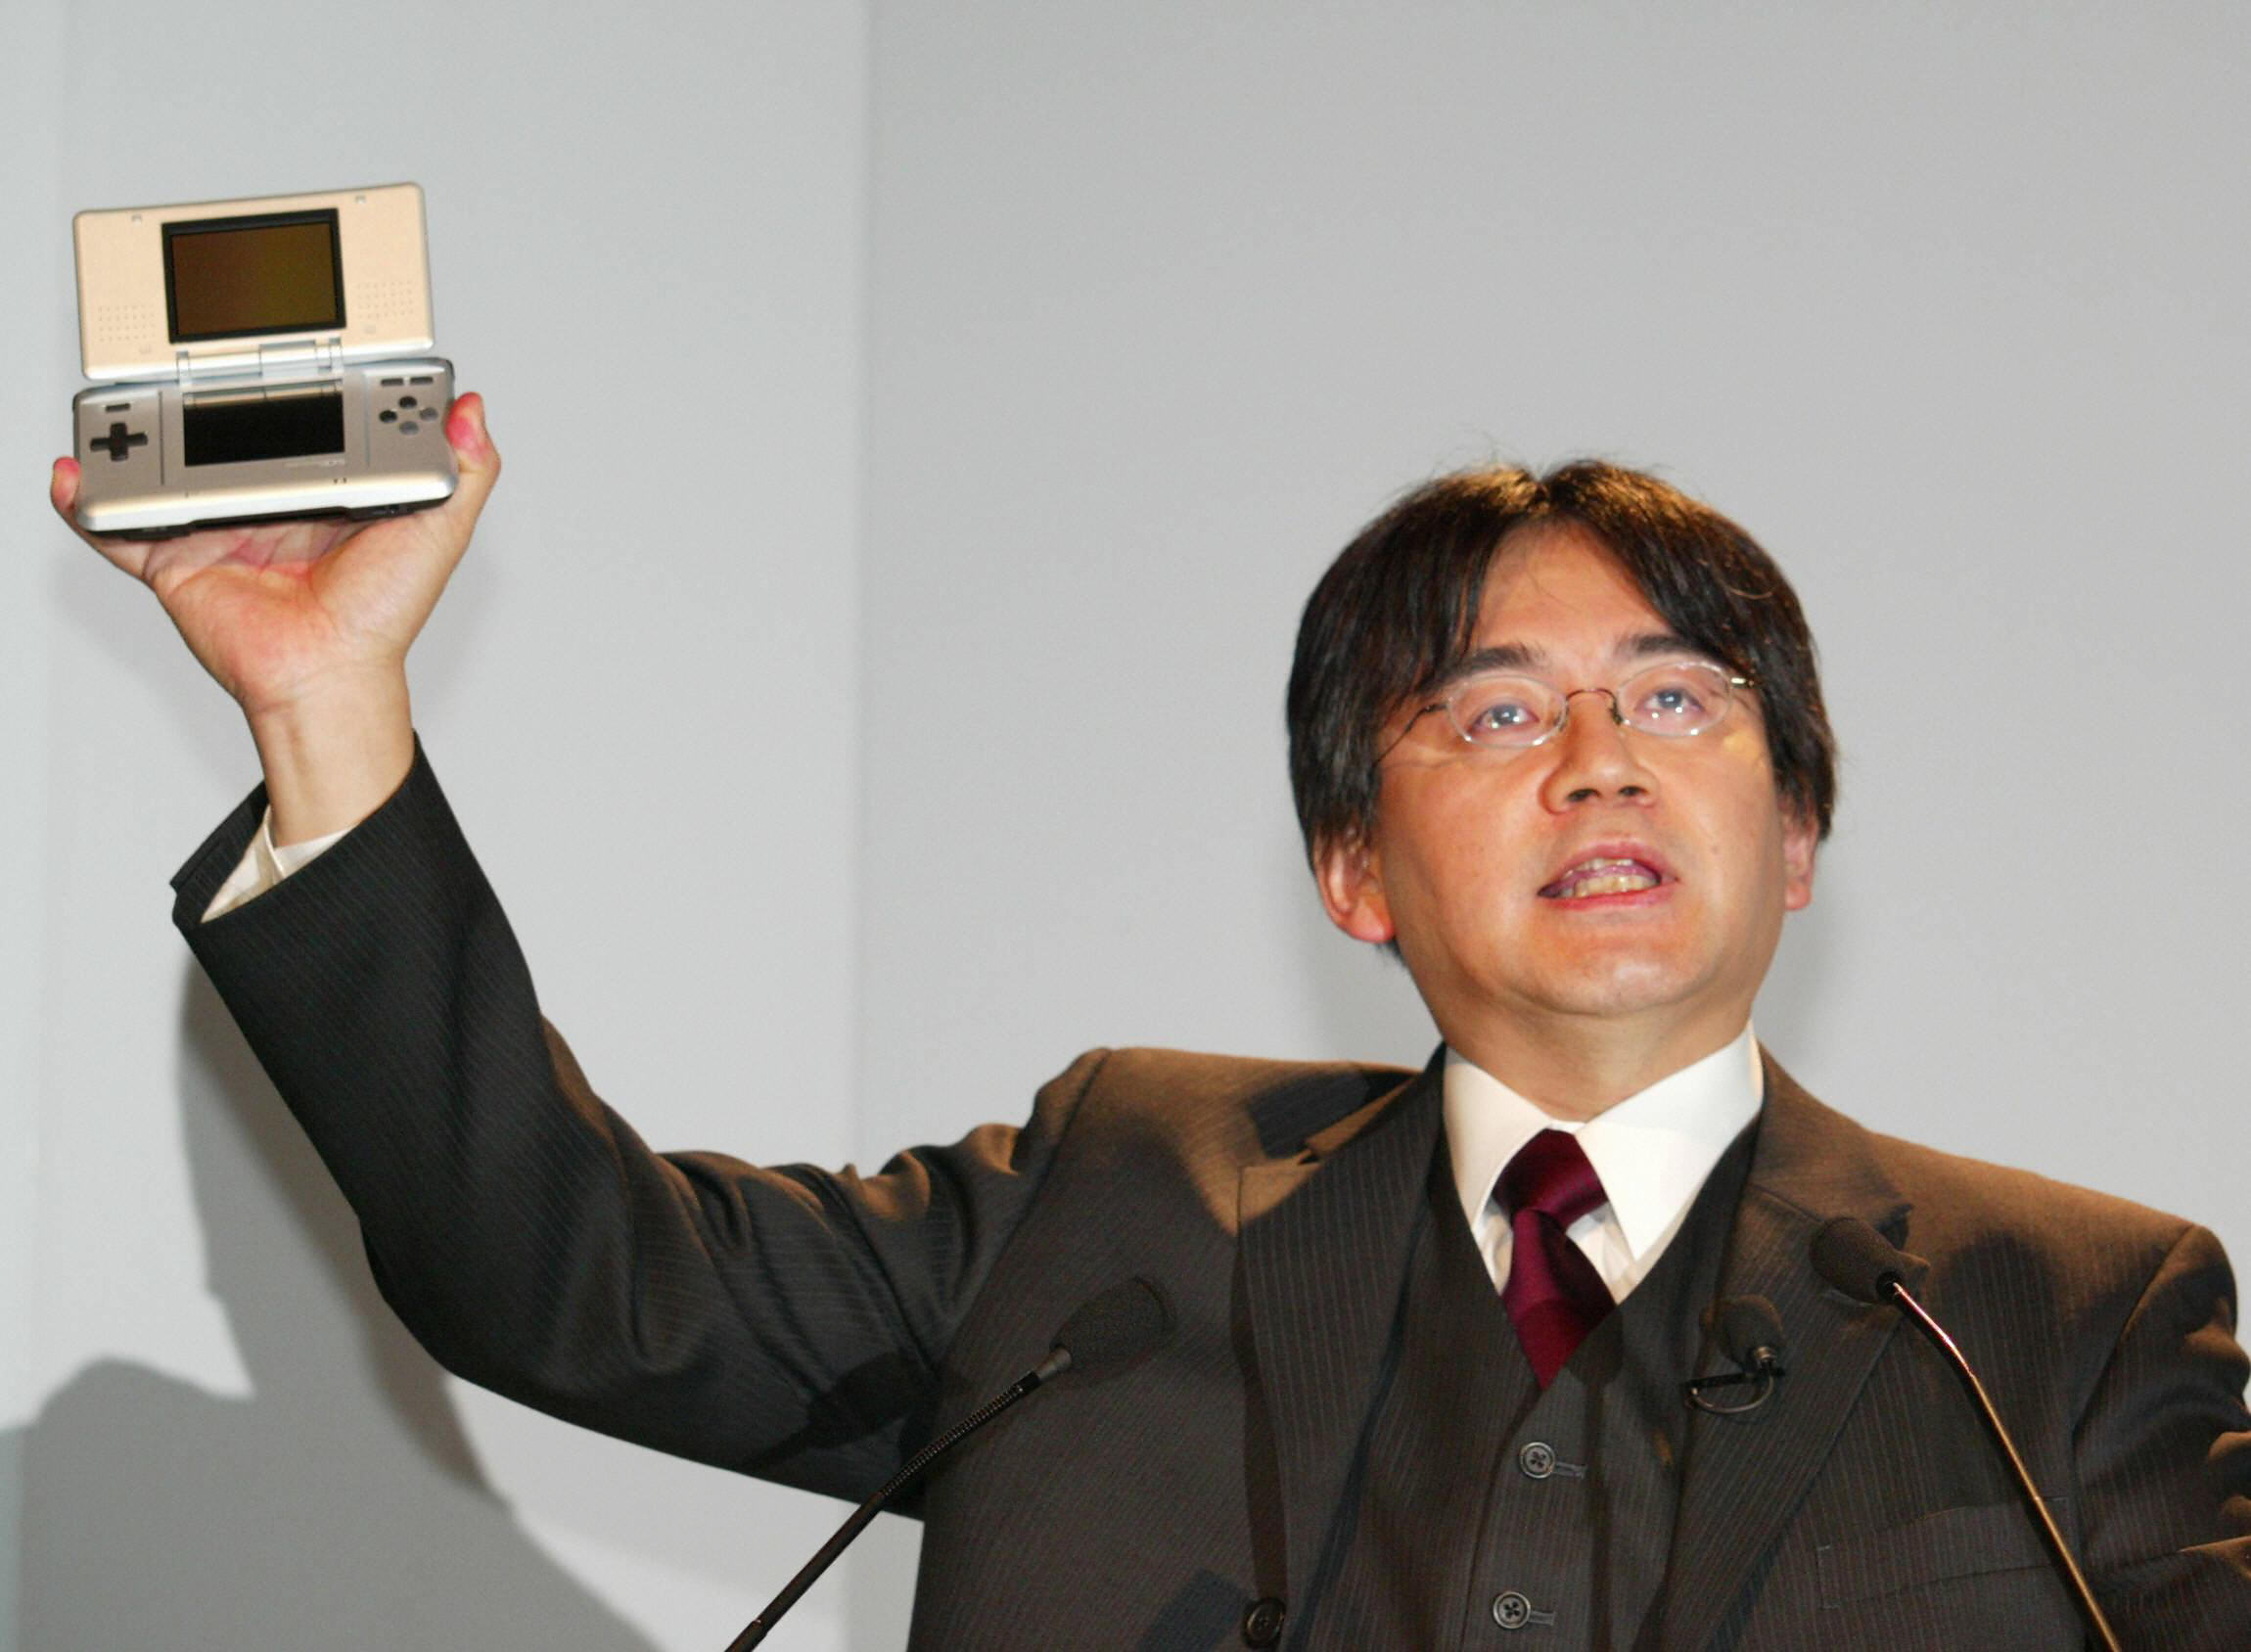 Iwata unveils the Nintendo DS in 2004. (Getty)